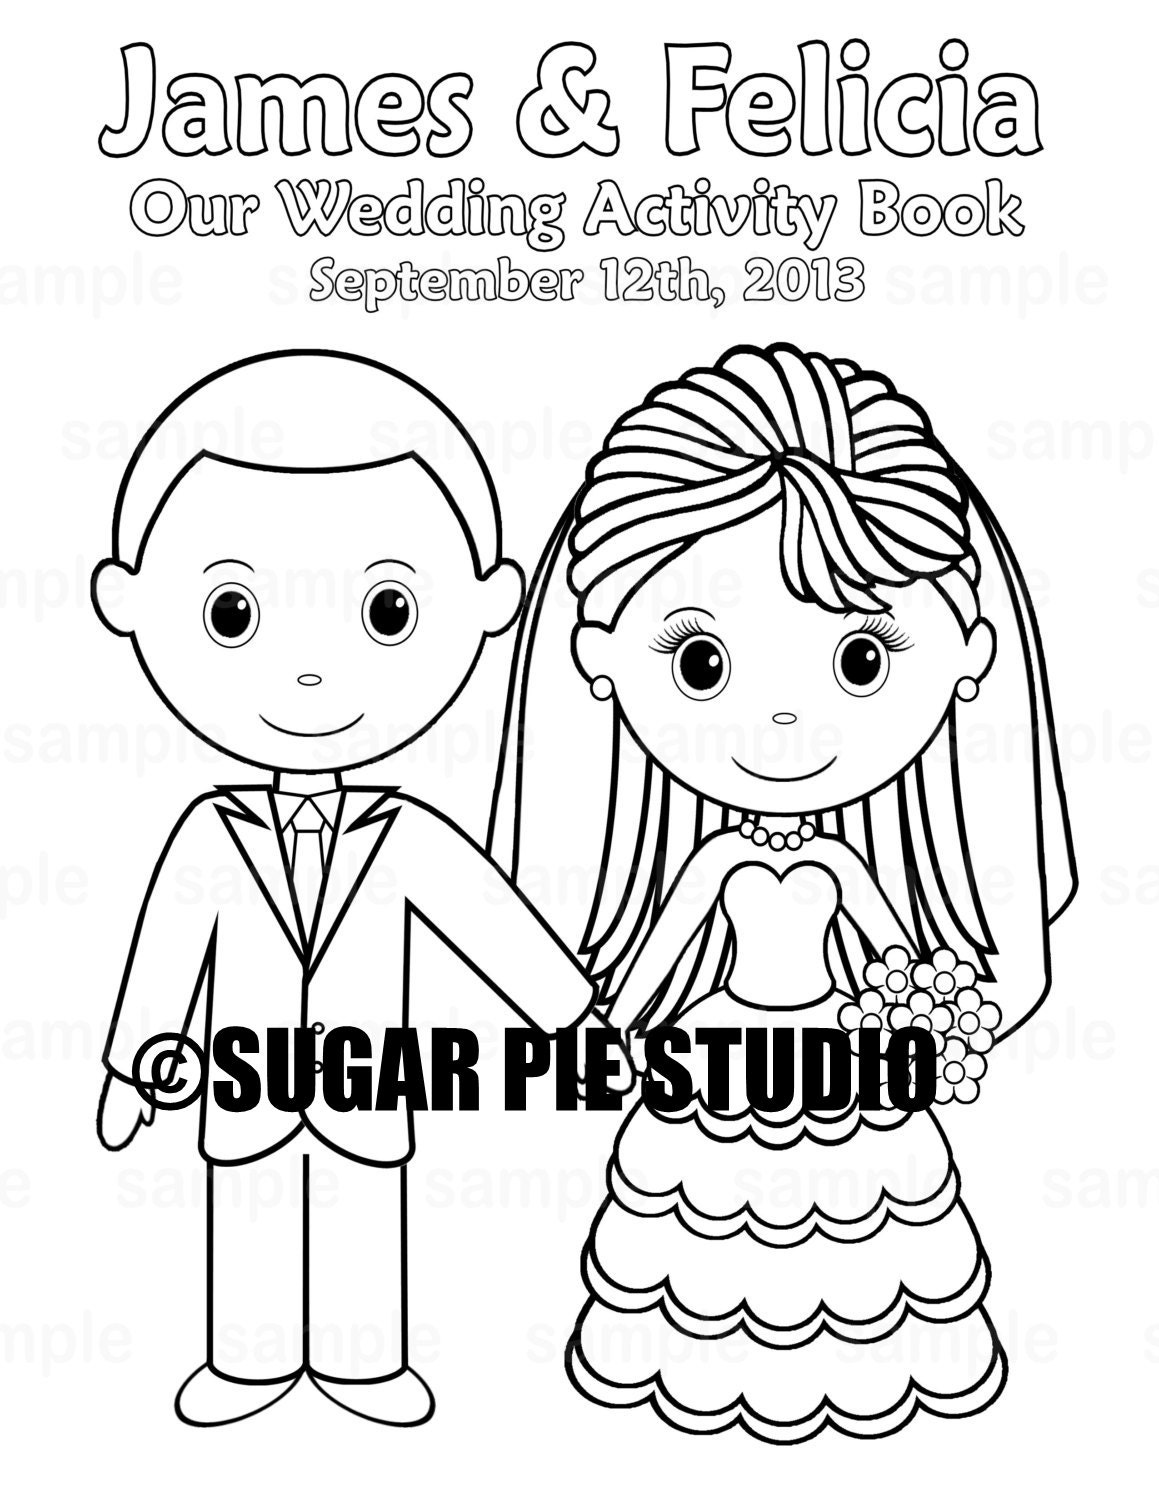 It's just an image of Playful Personalized Wedding Coloring Book